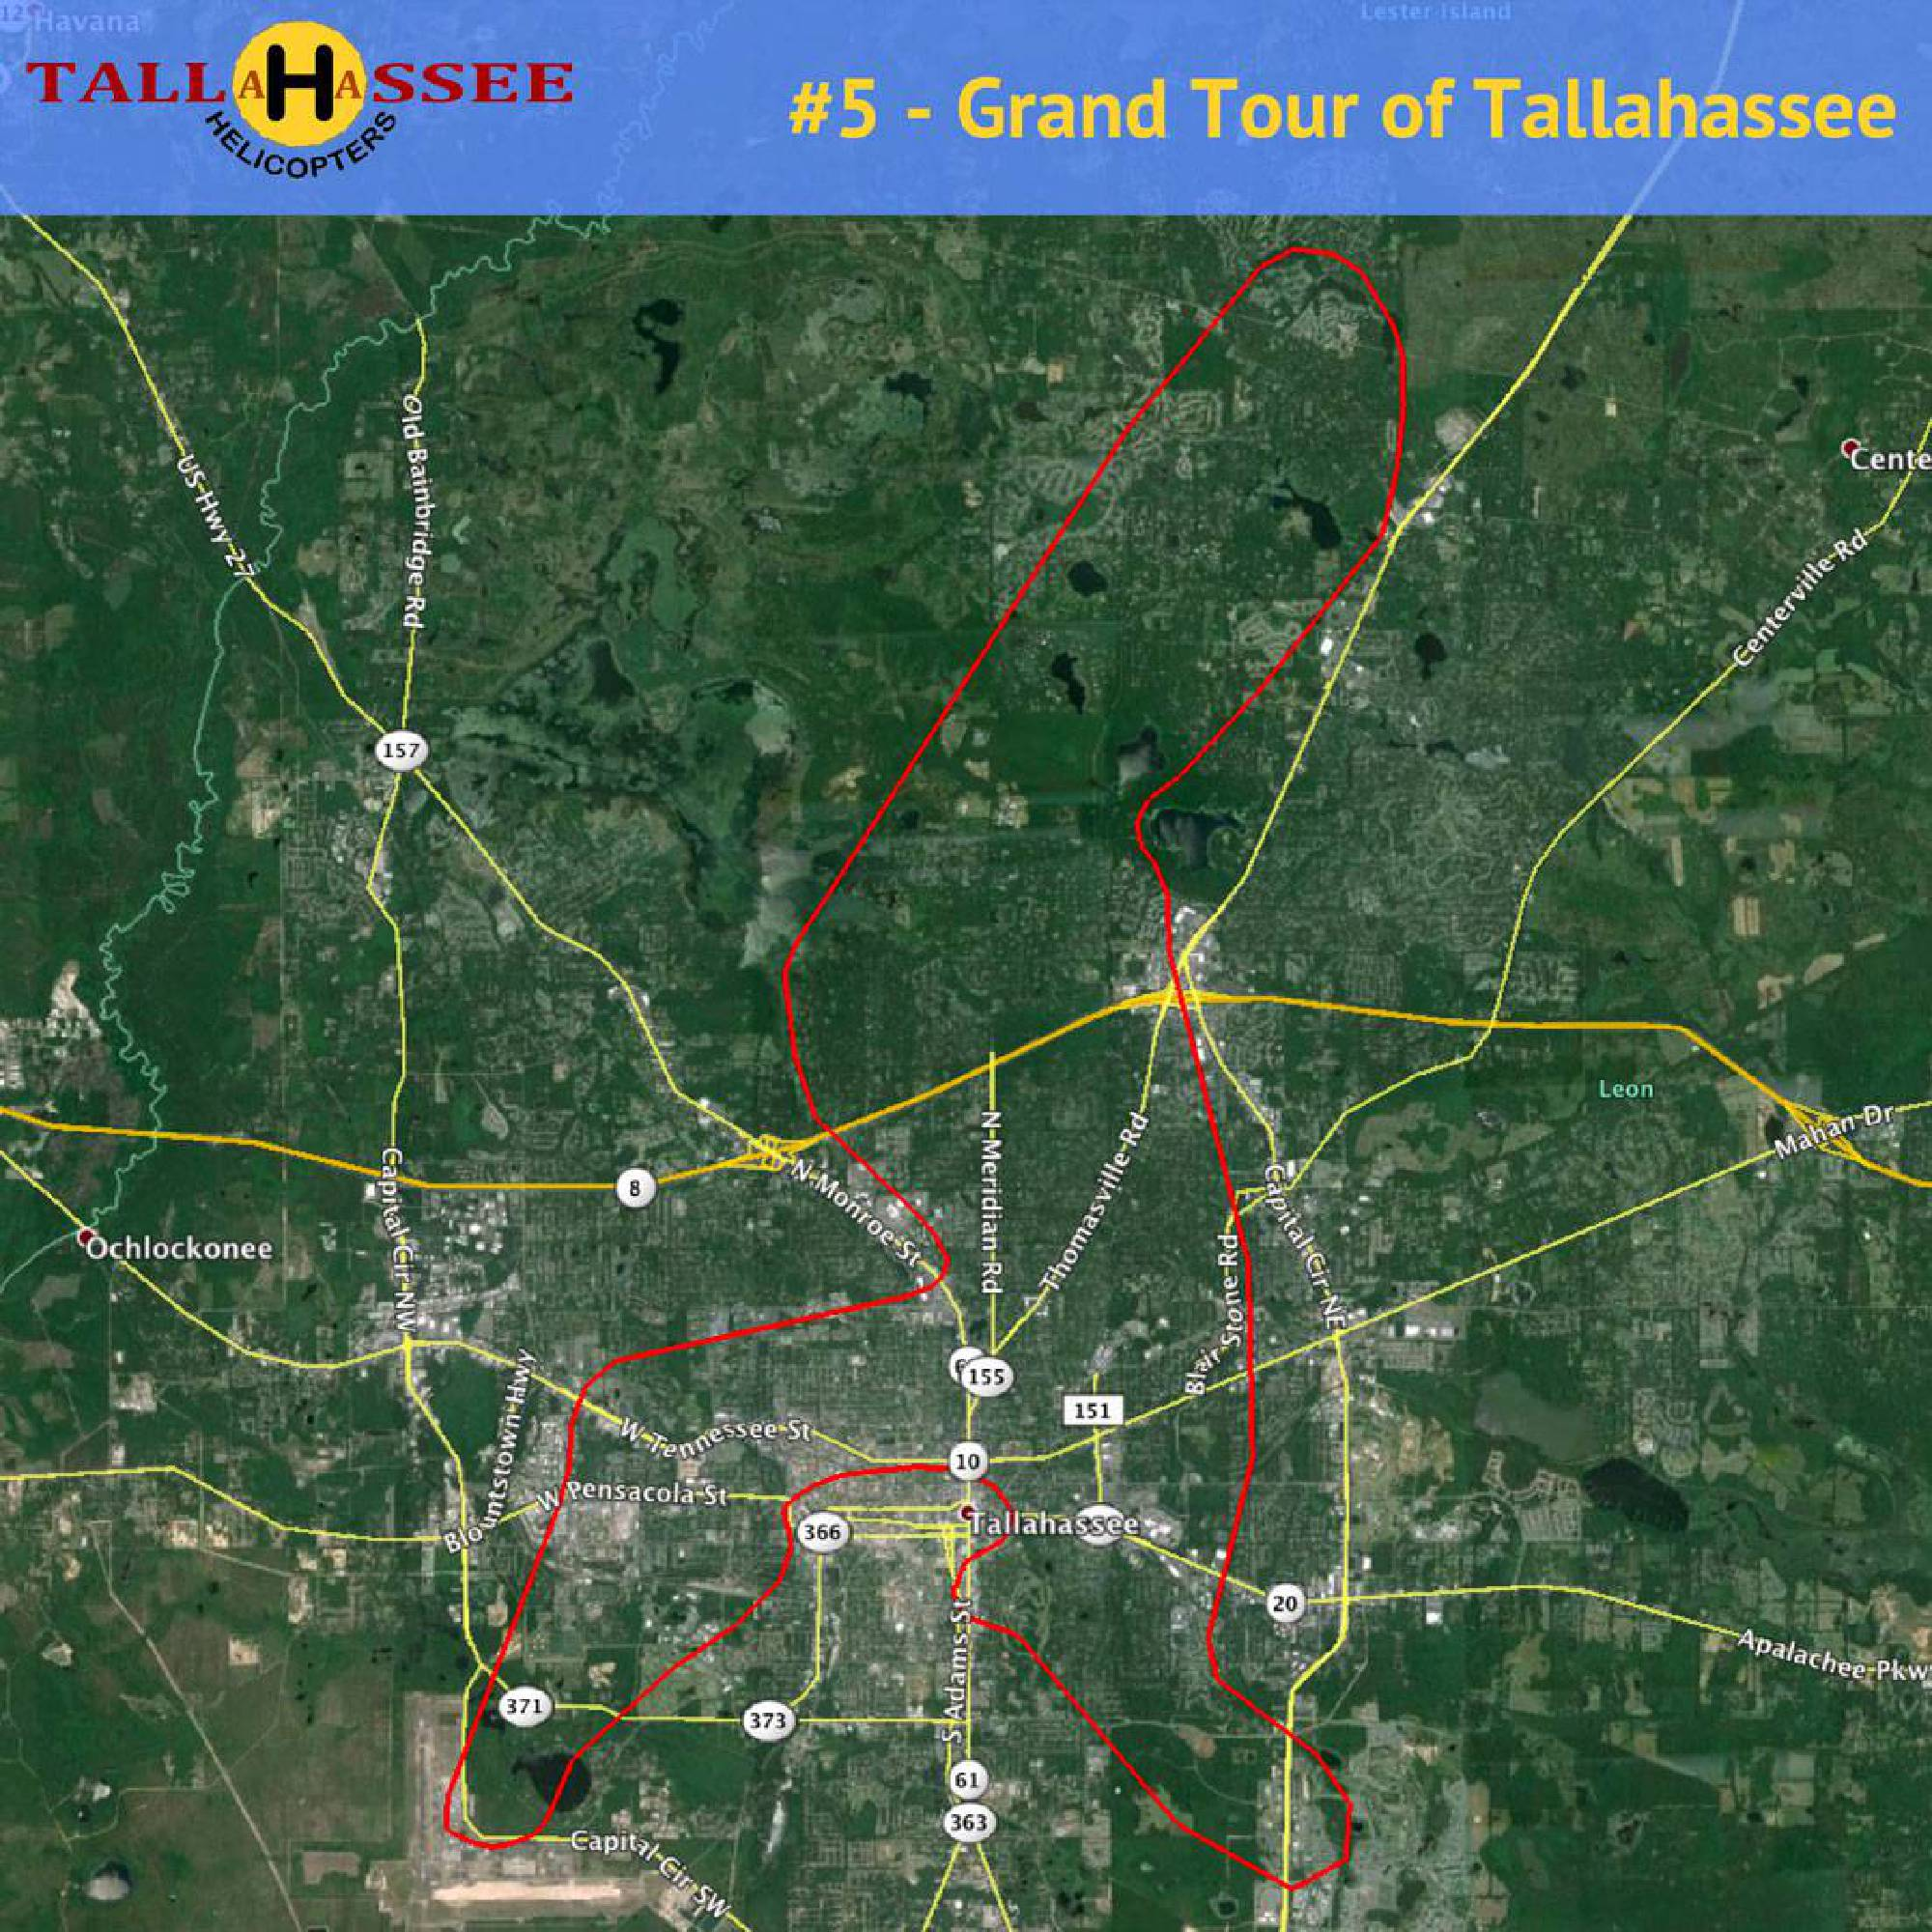 Grand Helicopter Tour of Tallahassee